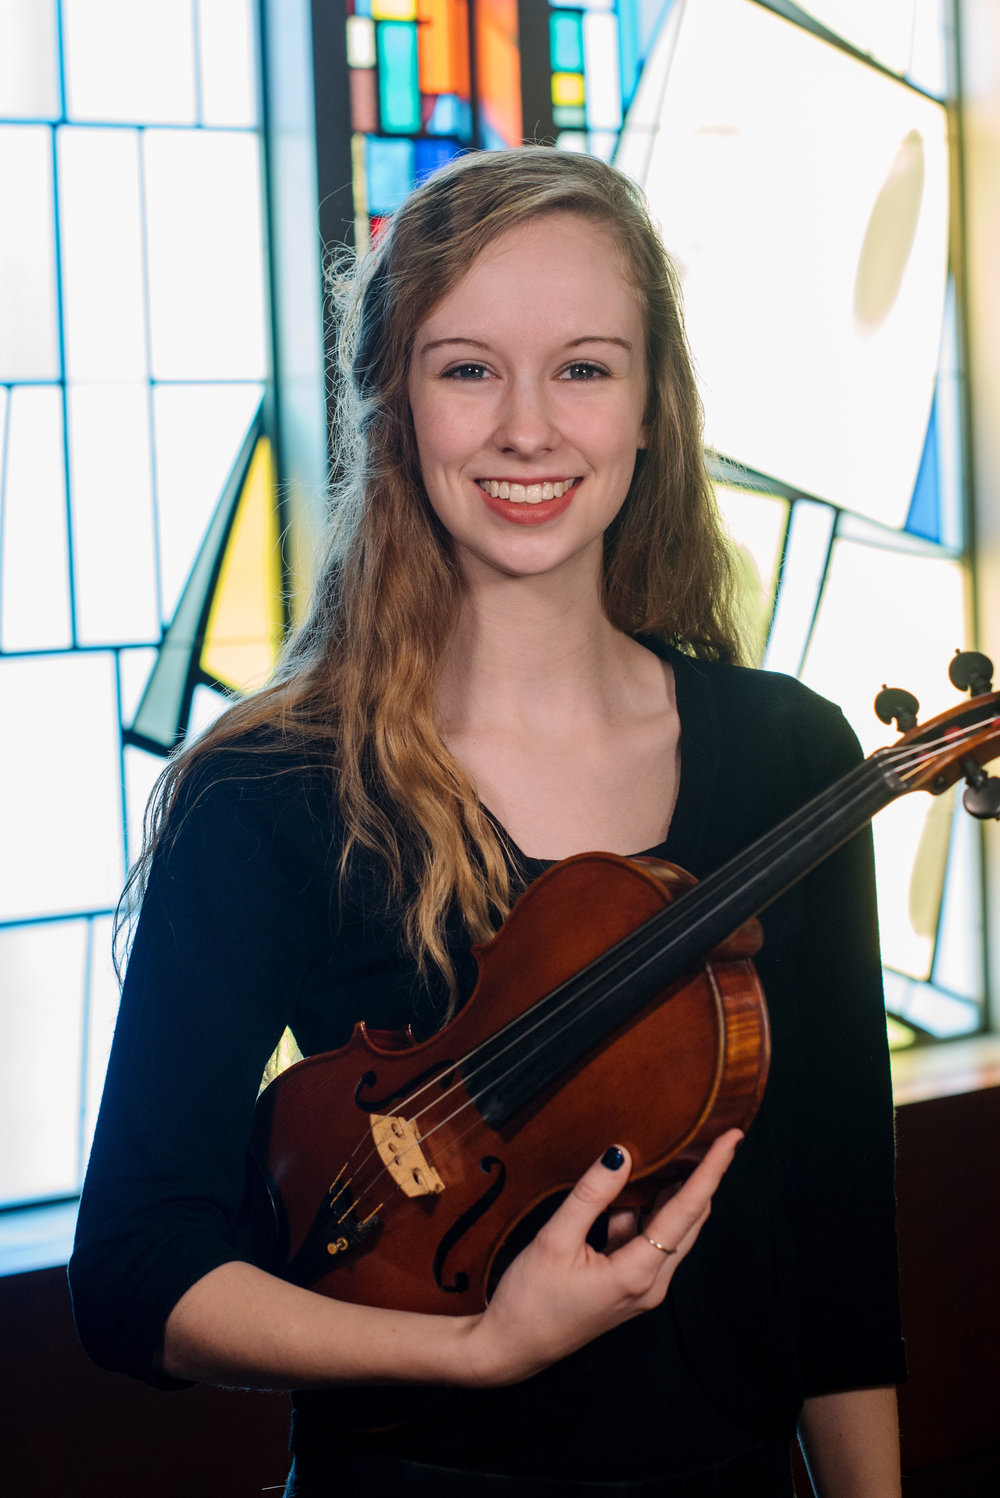 - JULIA BONFIELDVIOLINJulia is attending Cedarville University as a Music Education Major. While she is still young in her music career, she has compiled an impressive resume' of performances including 24 recitals, 50 concerts, pit orchestras, and various solos/ensembles for churches, weddings, and nursing homes. She plays first violin in the 40 member Cedarville University orchestra, as well as plays weekly with her church, First Baptist Church of Kettering, orchestra and frequently plays special events for Fairhaven Church in Centerville.